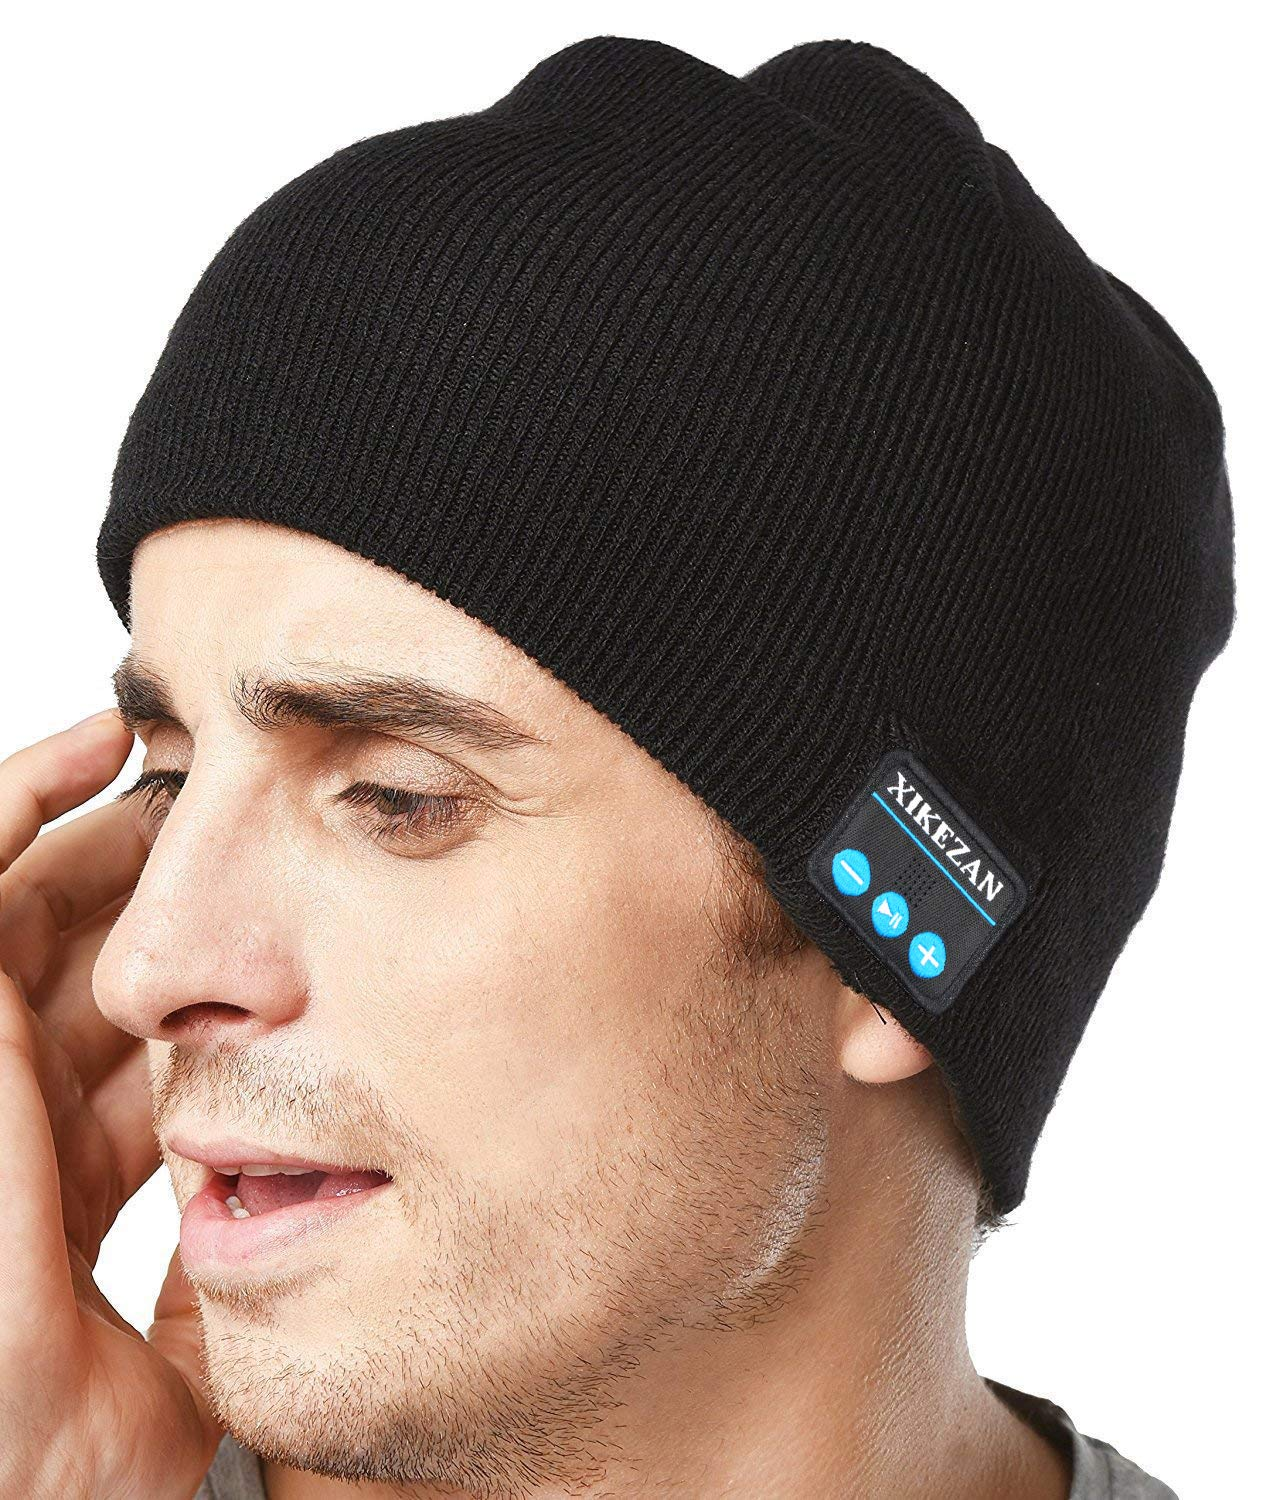 25c6a8c41 XIKEZAN Upgraded Unisex Knit Bluetooth Beanie Hat Headphones V4.2 Unique  Christmas Tech Gifts for Men/Dad/Women/Mom/Teen Boys/Girls Stocking Stuffer  ...